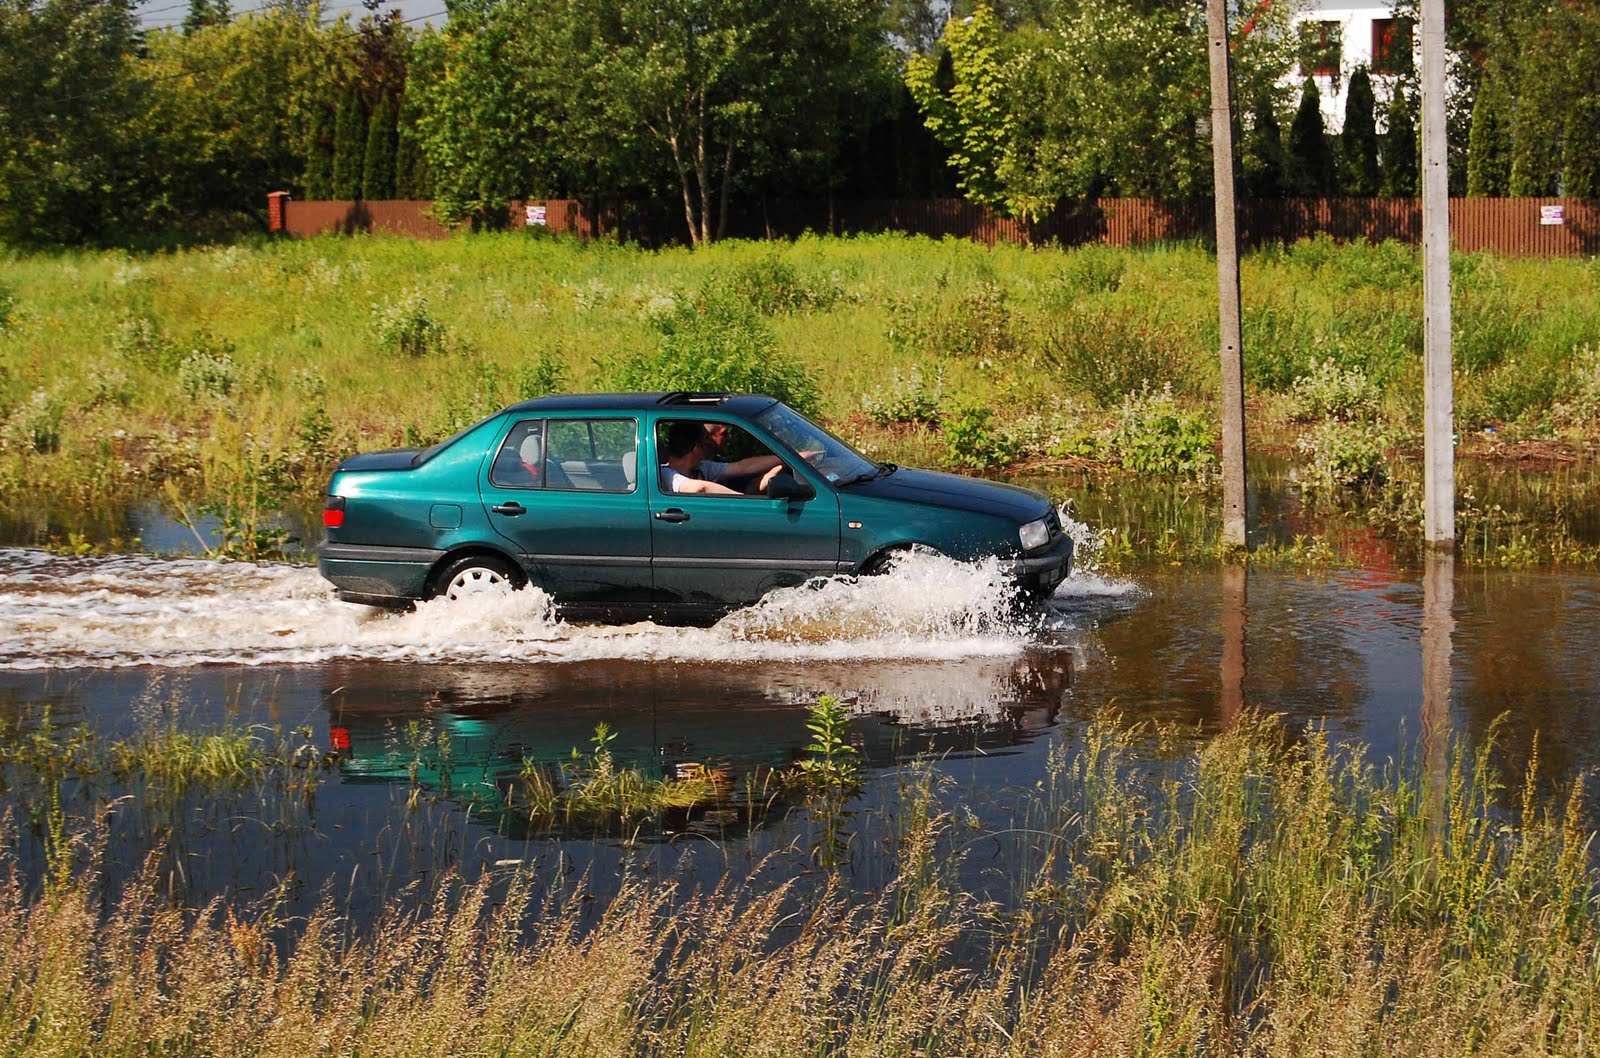 glasgow montana flood pictures